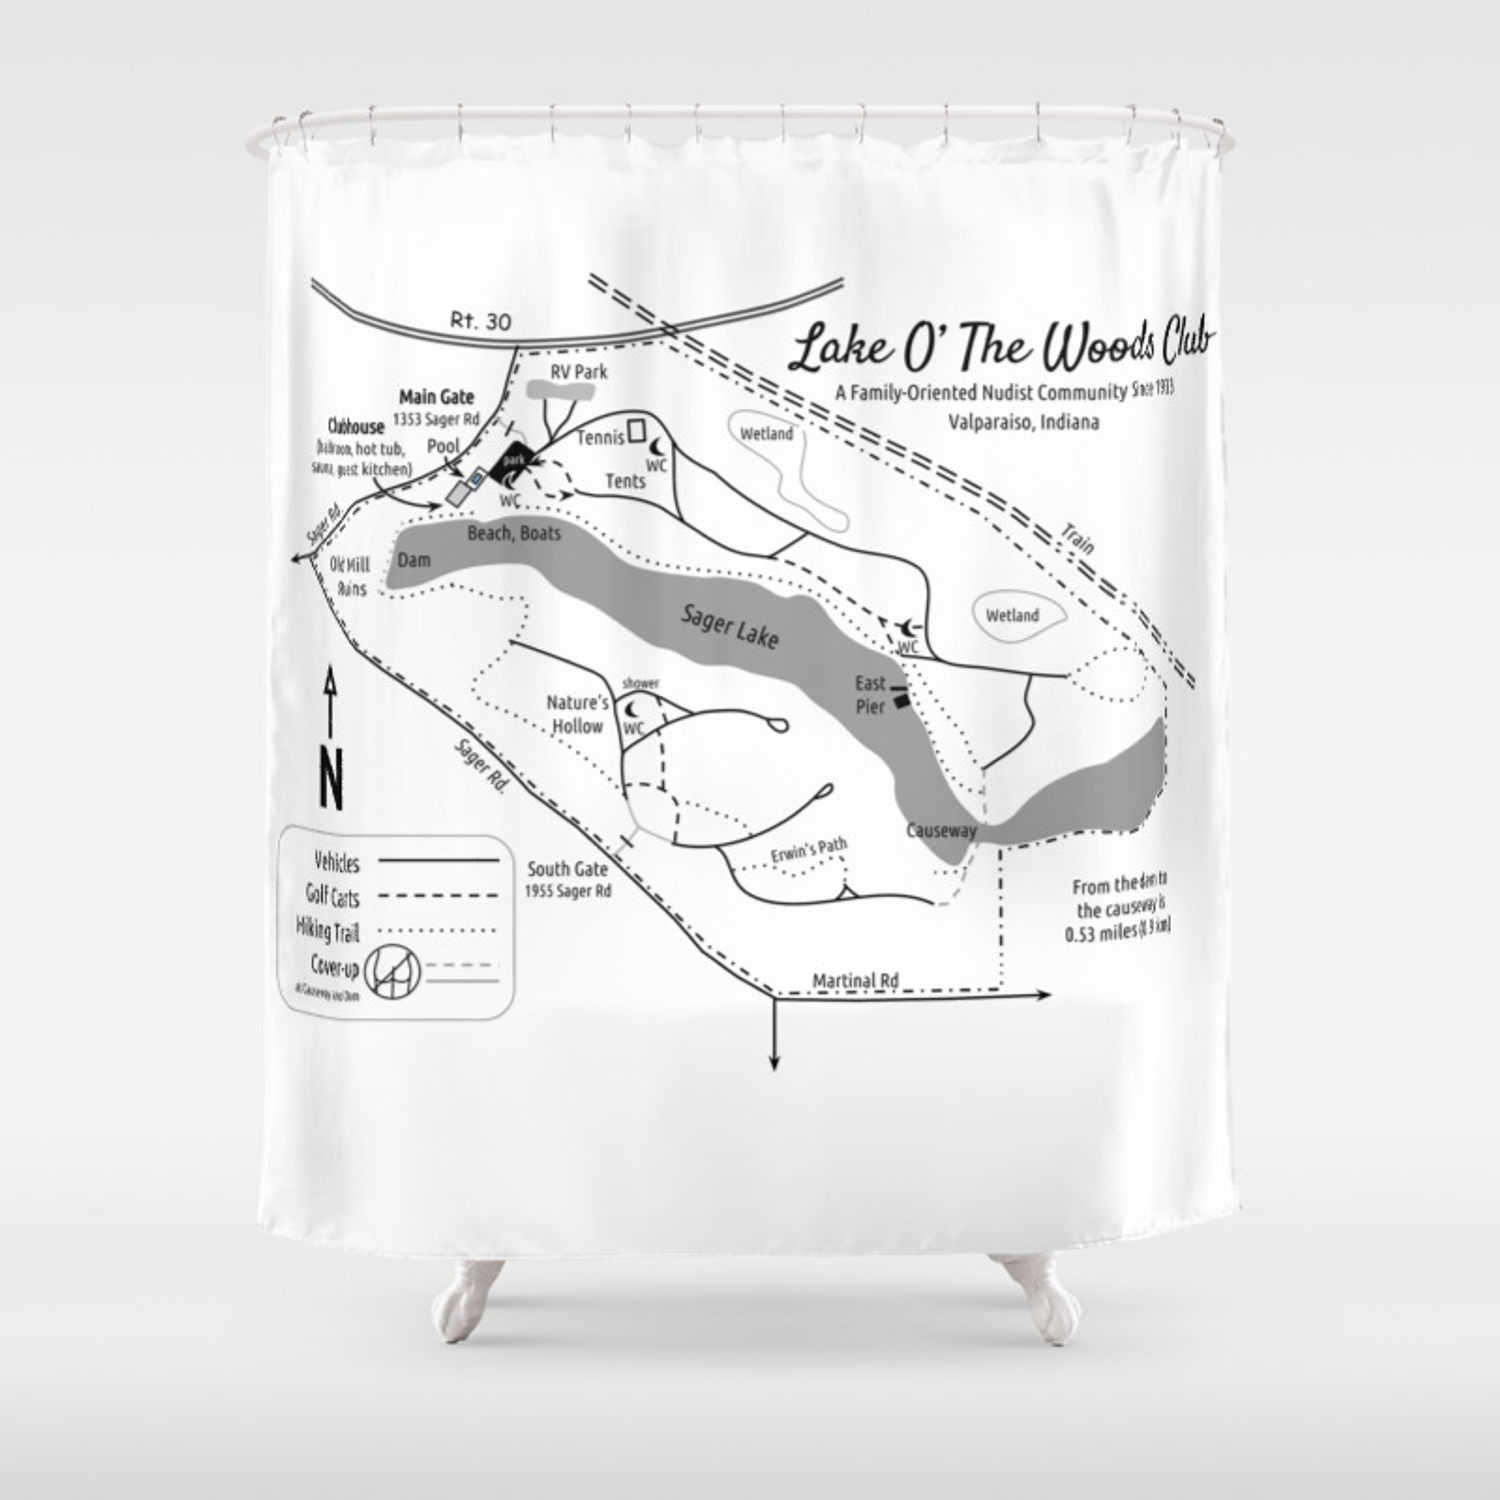 Lake O' The Woods Map O' The Grounds Shower Curtain Map Of Bathroom on bed map, bedroom map, portico map, exterior map, basement map, newfoundland and labrador map, security map, cafeteria map, secret passage map, fallout shelter map,